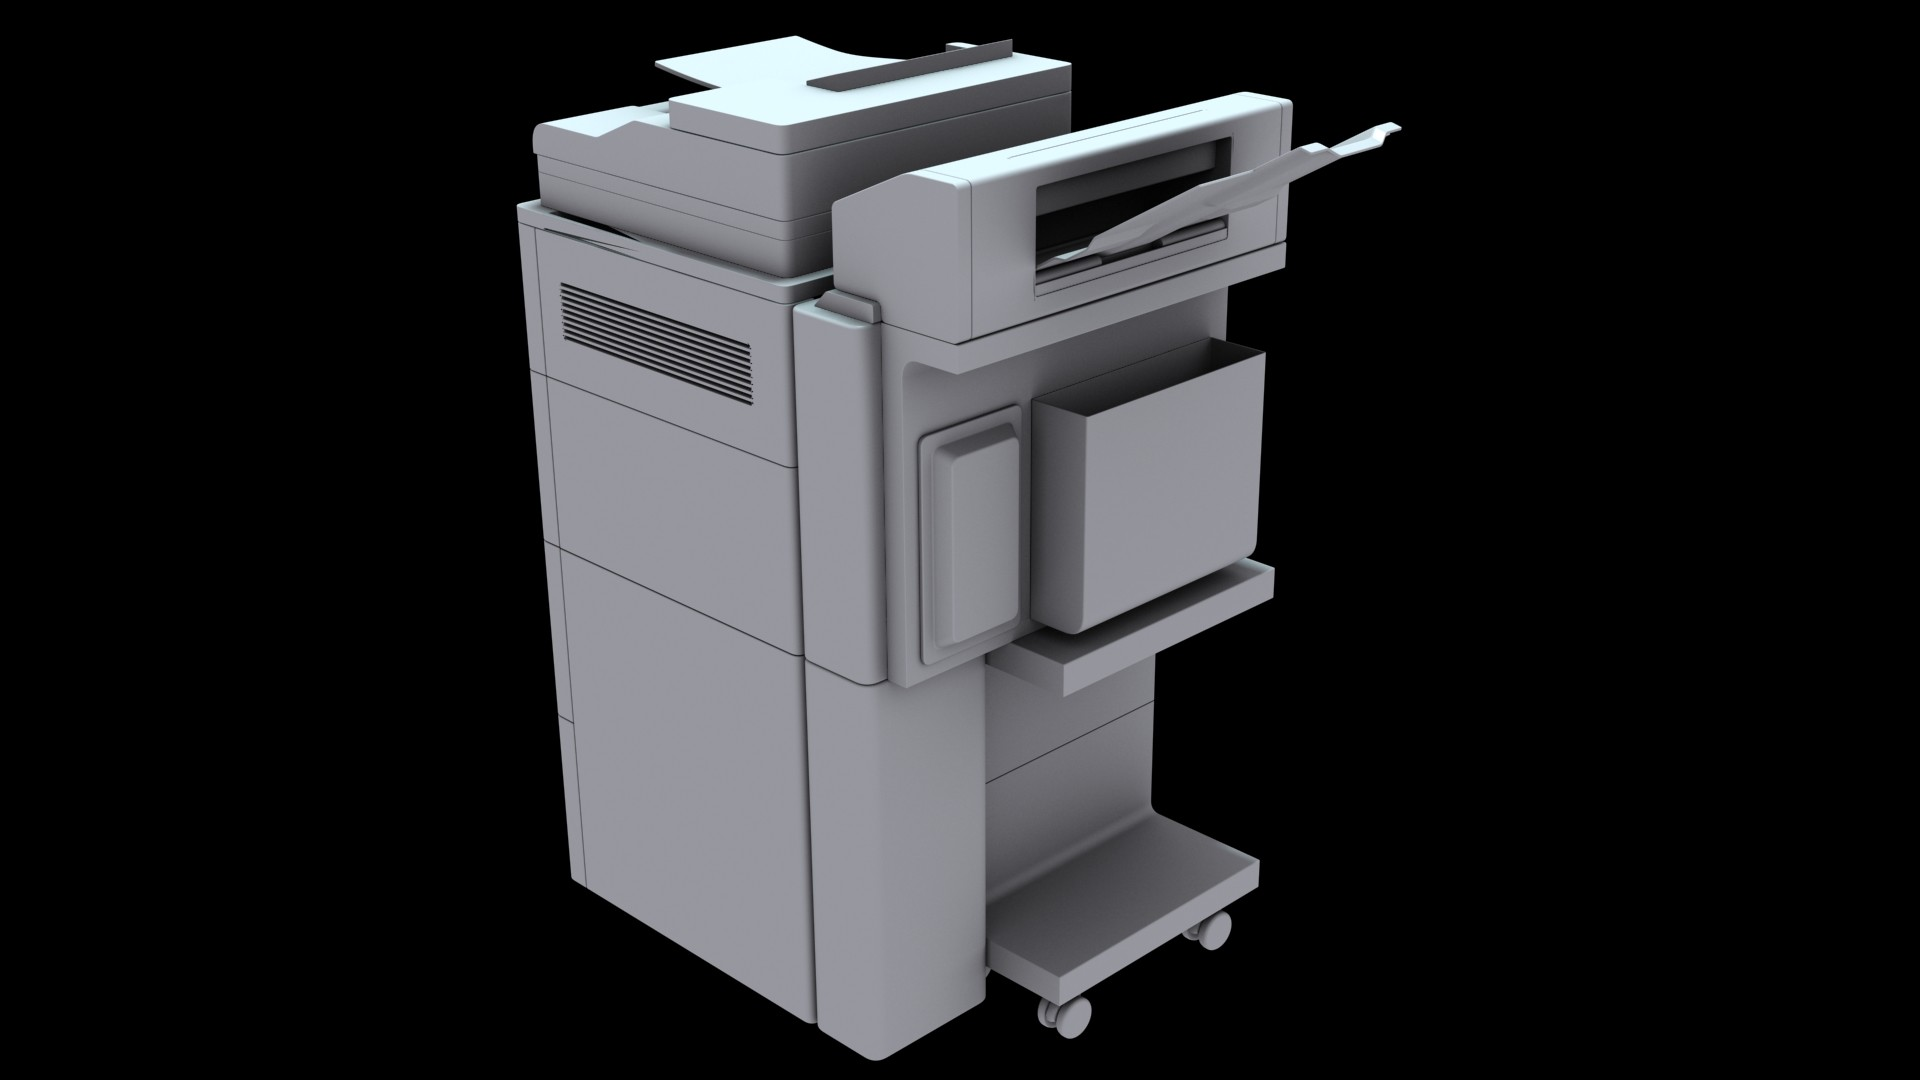 Sergey tabakov photocopier machine 14 hi02